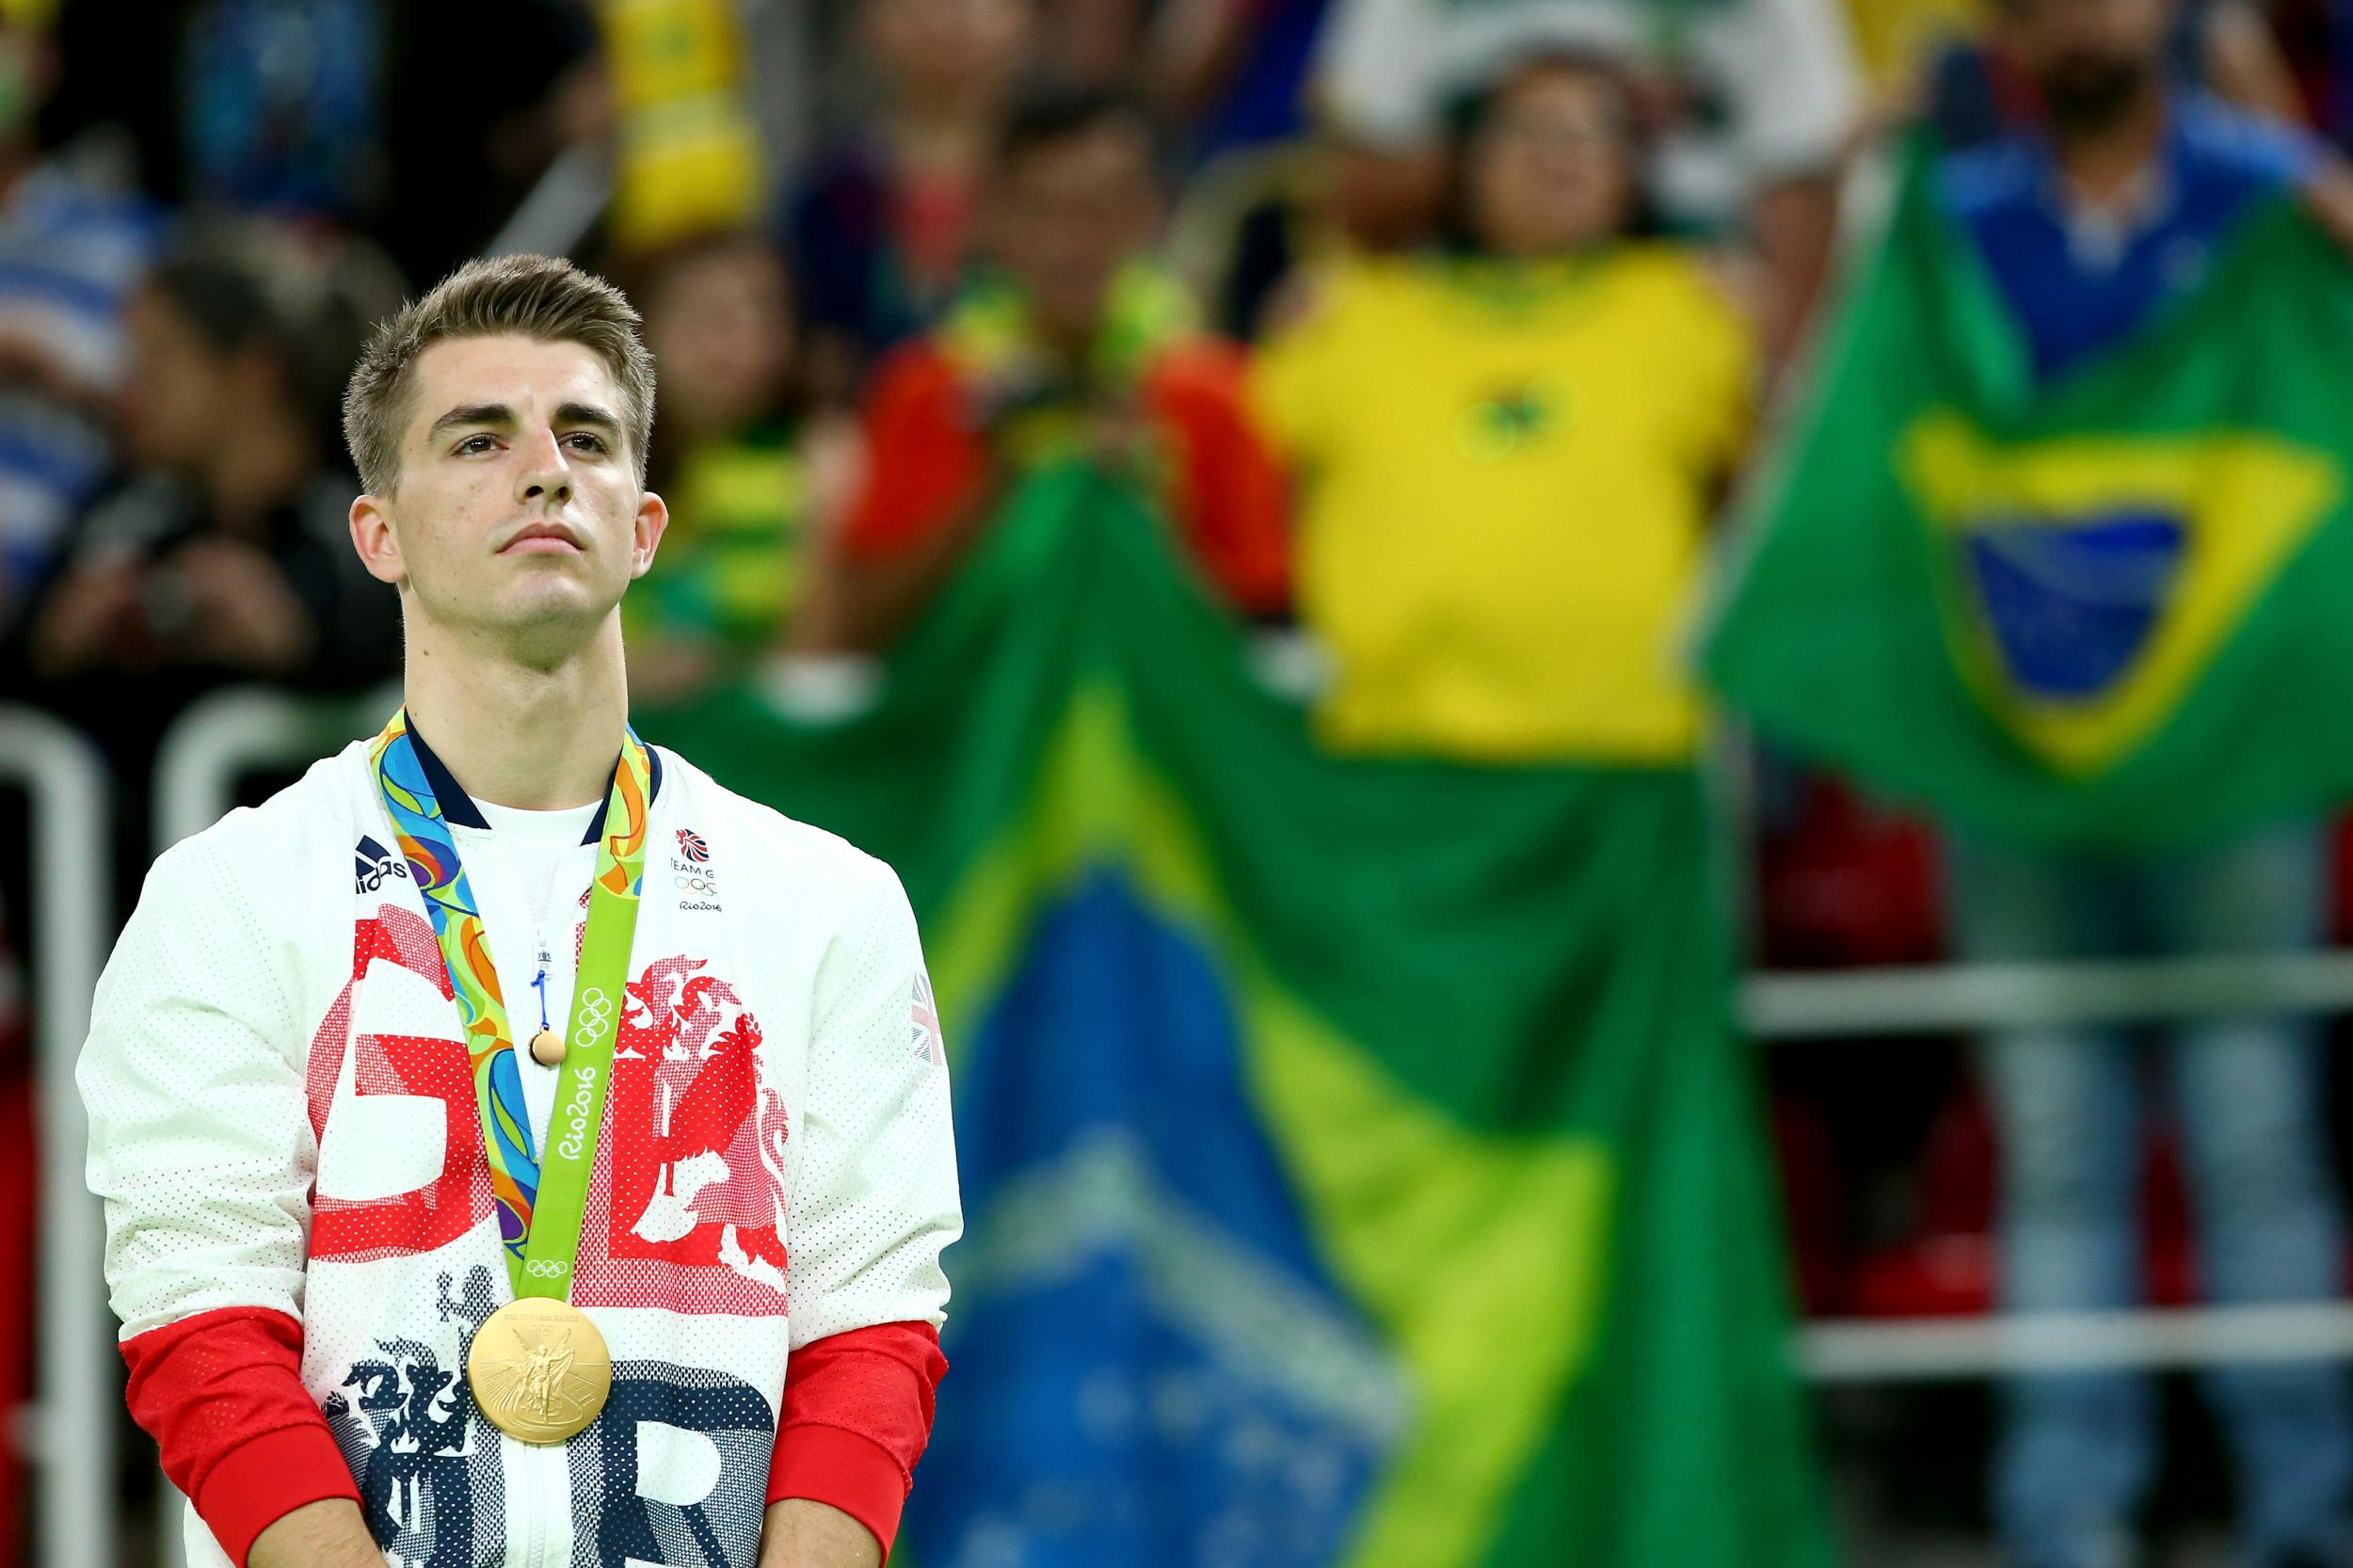 Rio 2016 round up: Max Whitlock leads charge for Team GB's sensational Sunday as Britain sits second in medal table